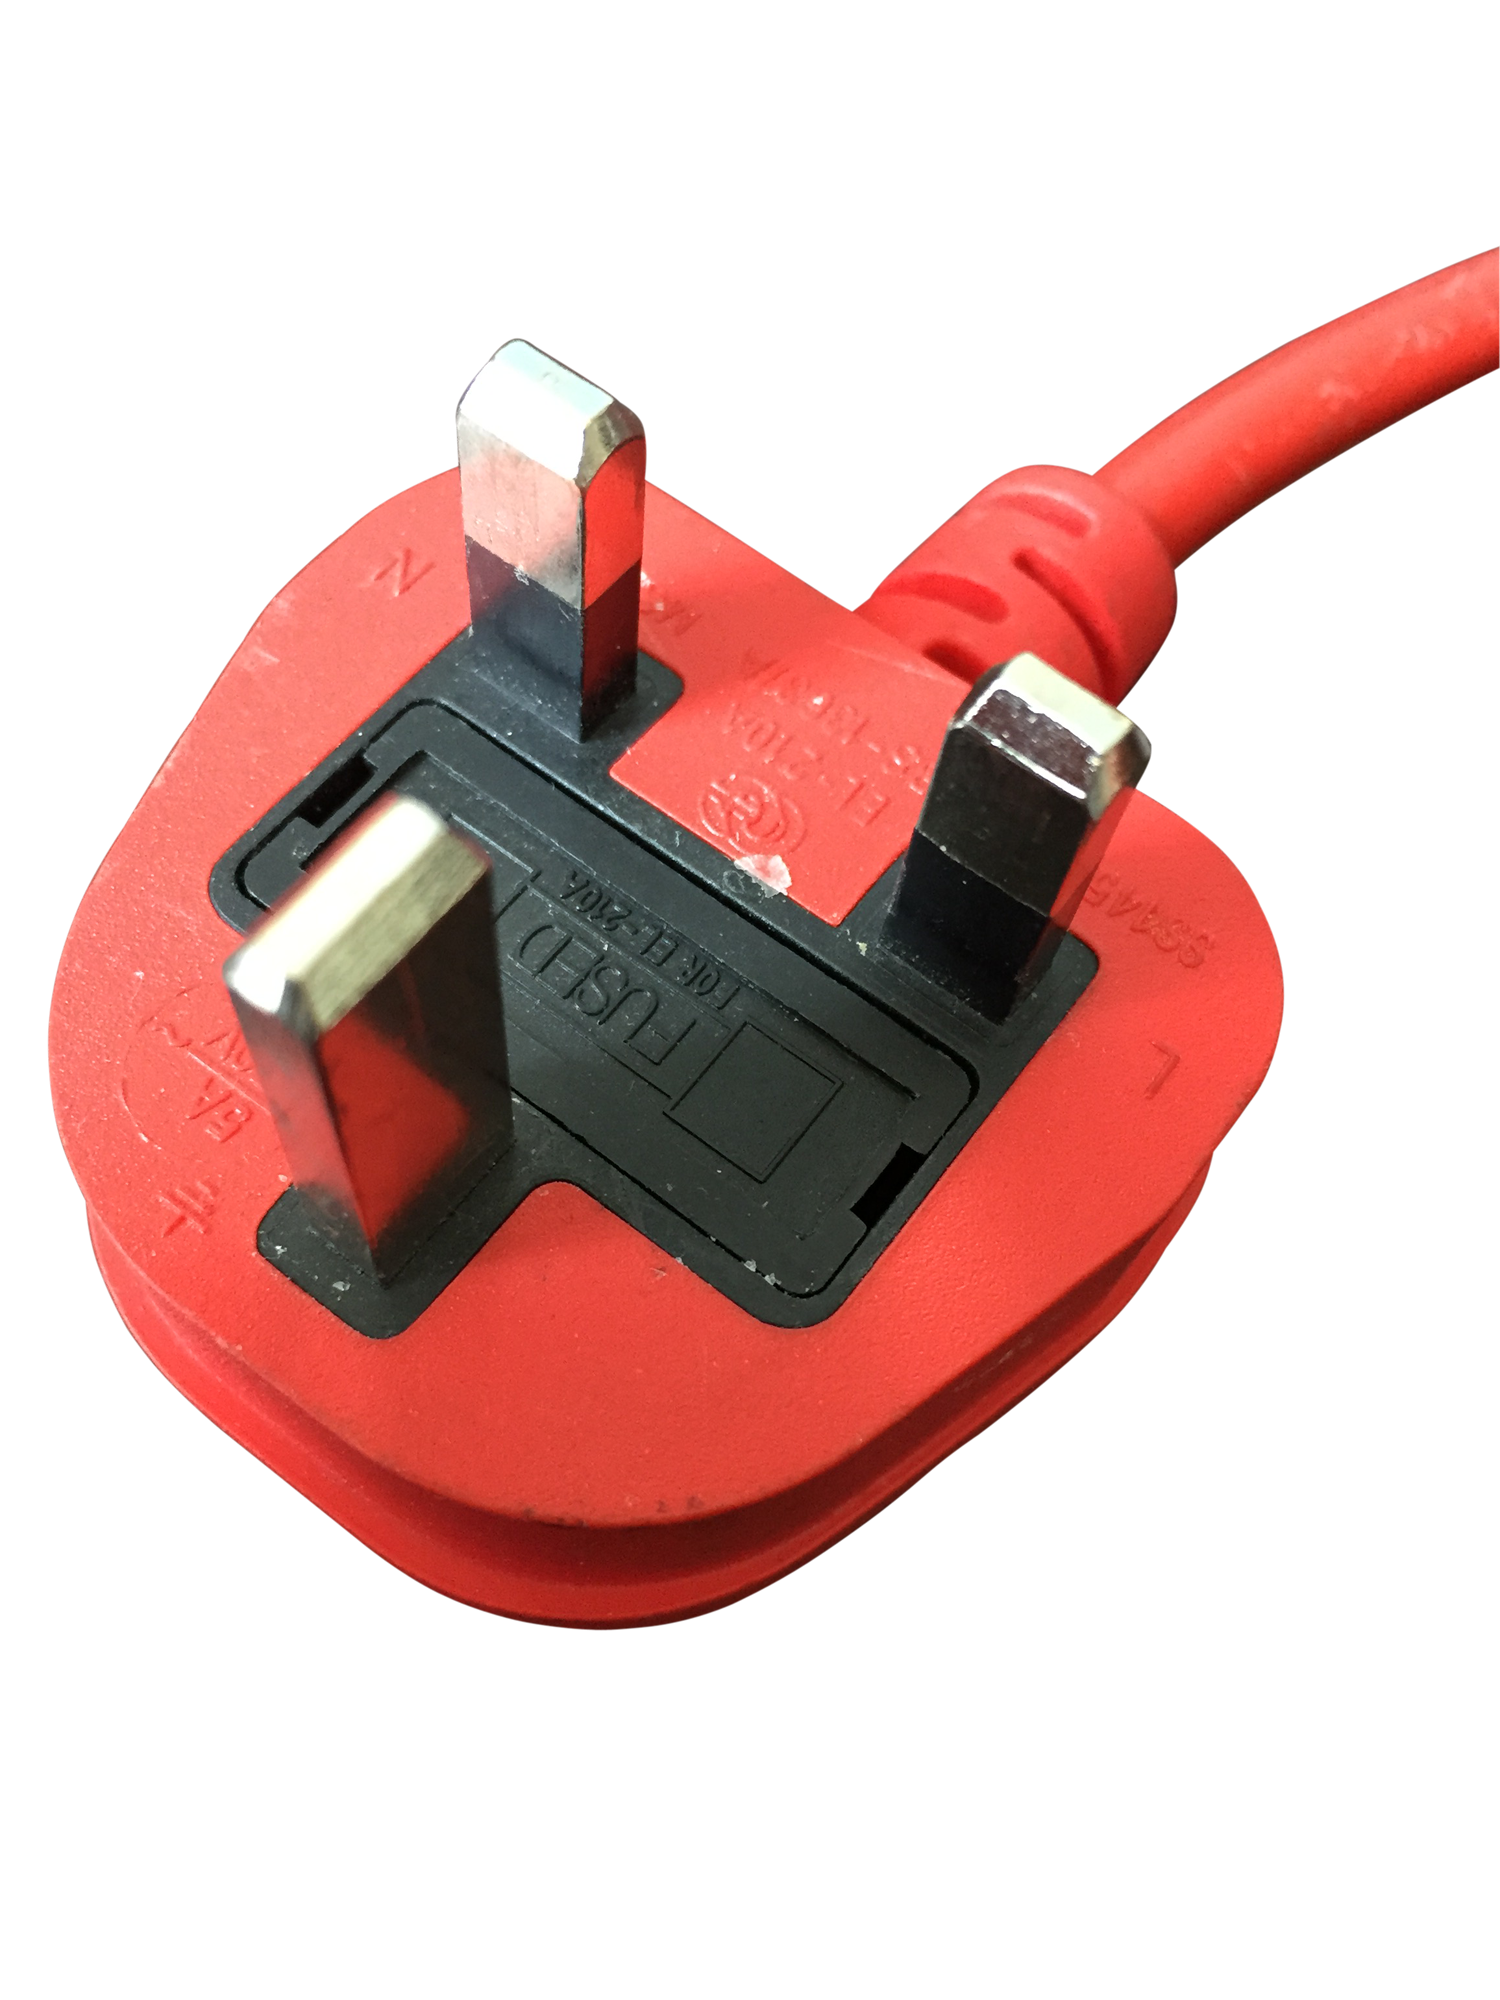 Red electrical plug used for pat testing cables